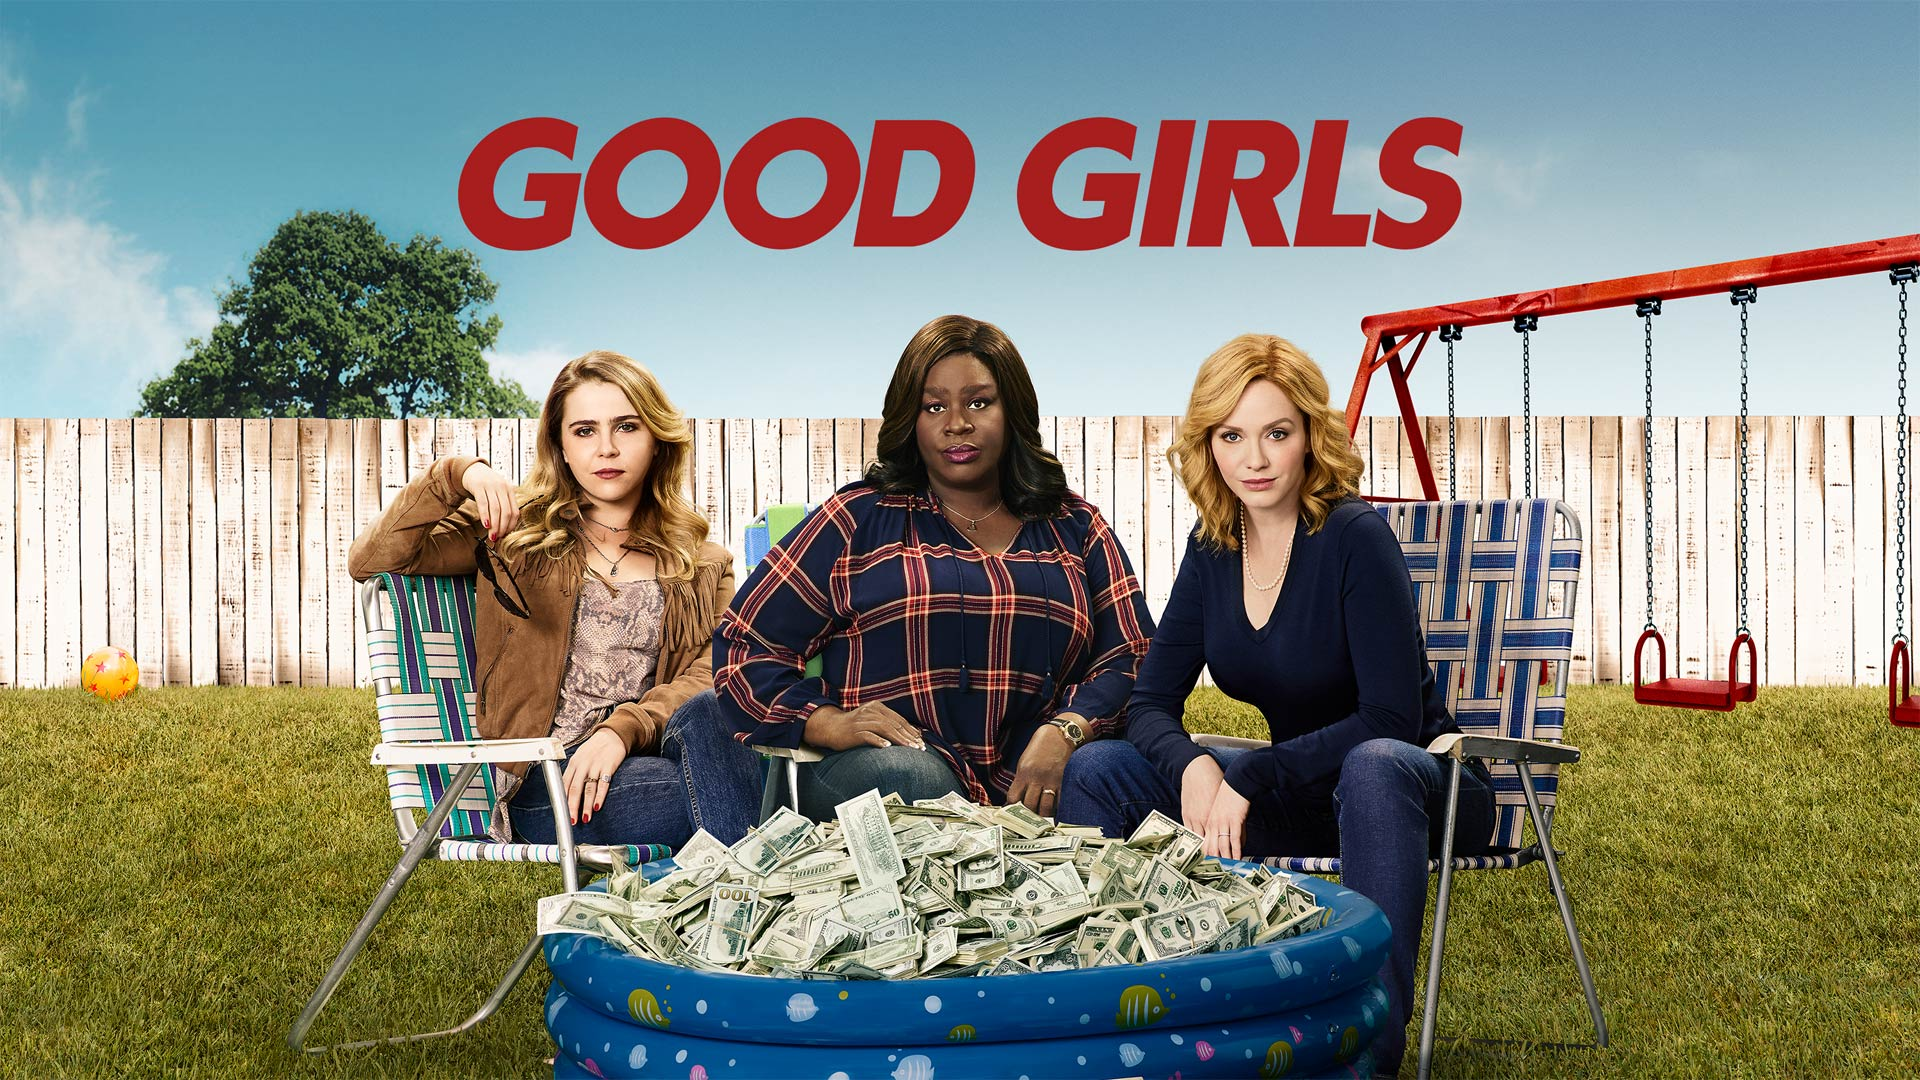 NBC.com-GoodGirls-AllShowsImage-1920x1080.jpg